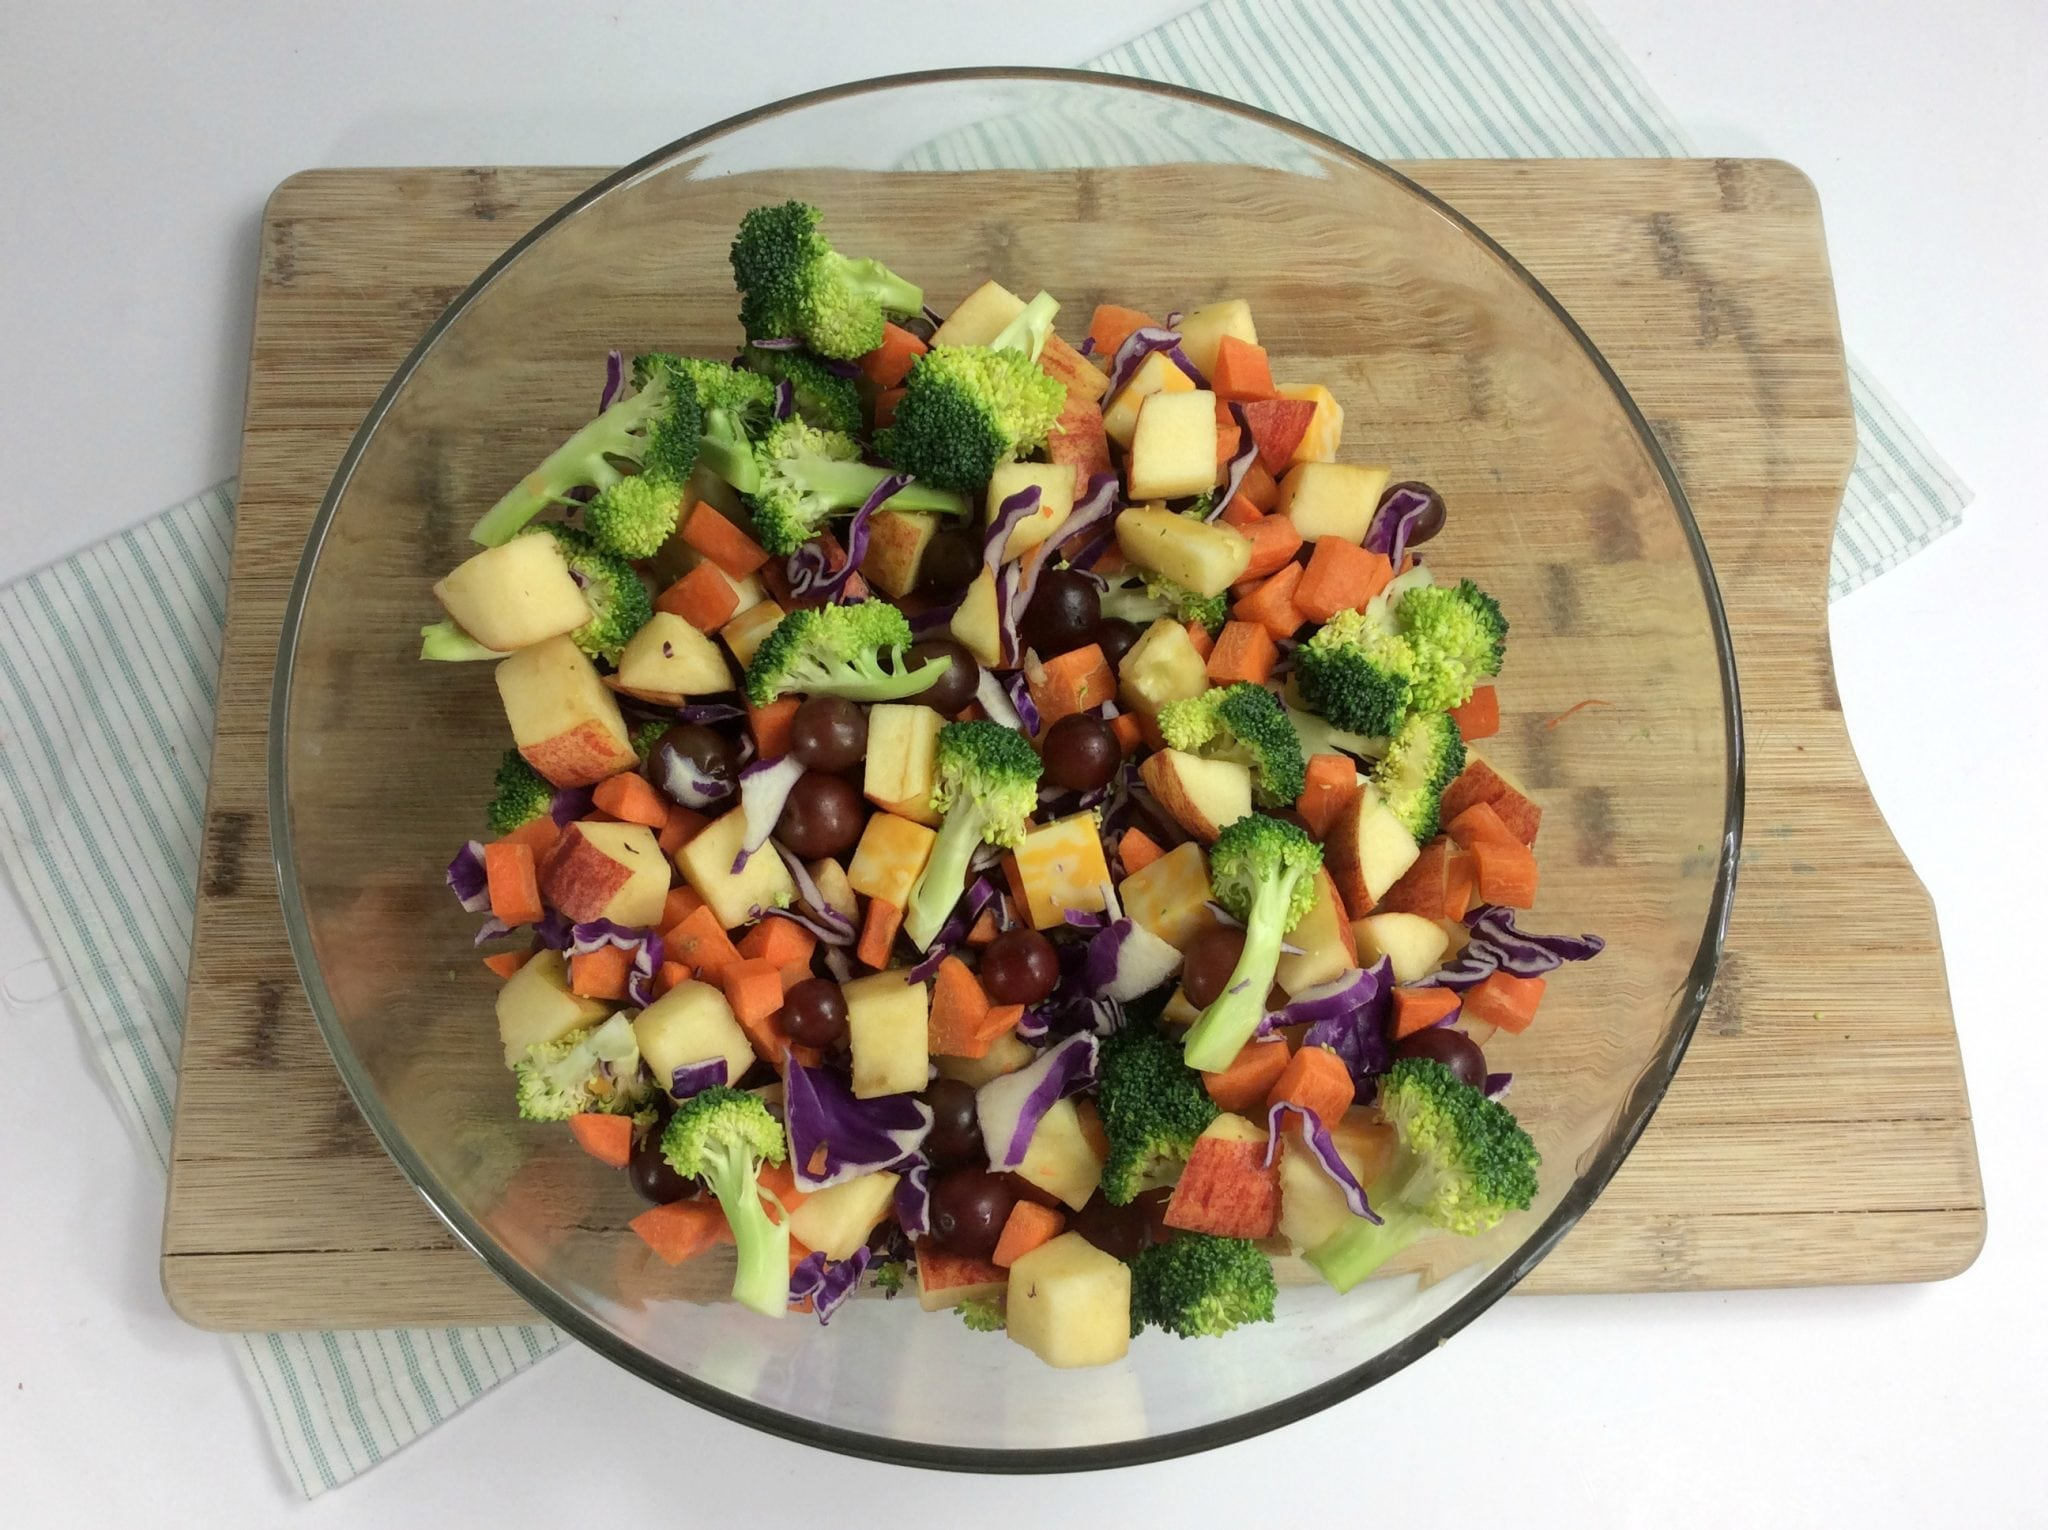 chopped veggies and fruit for the Weight Watchers broccoli salad